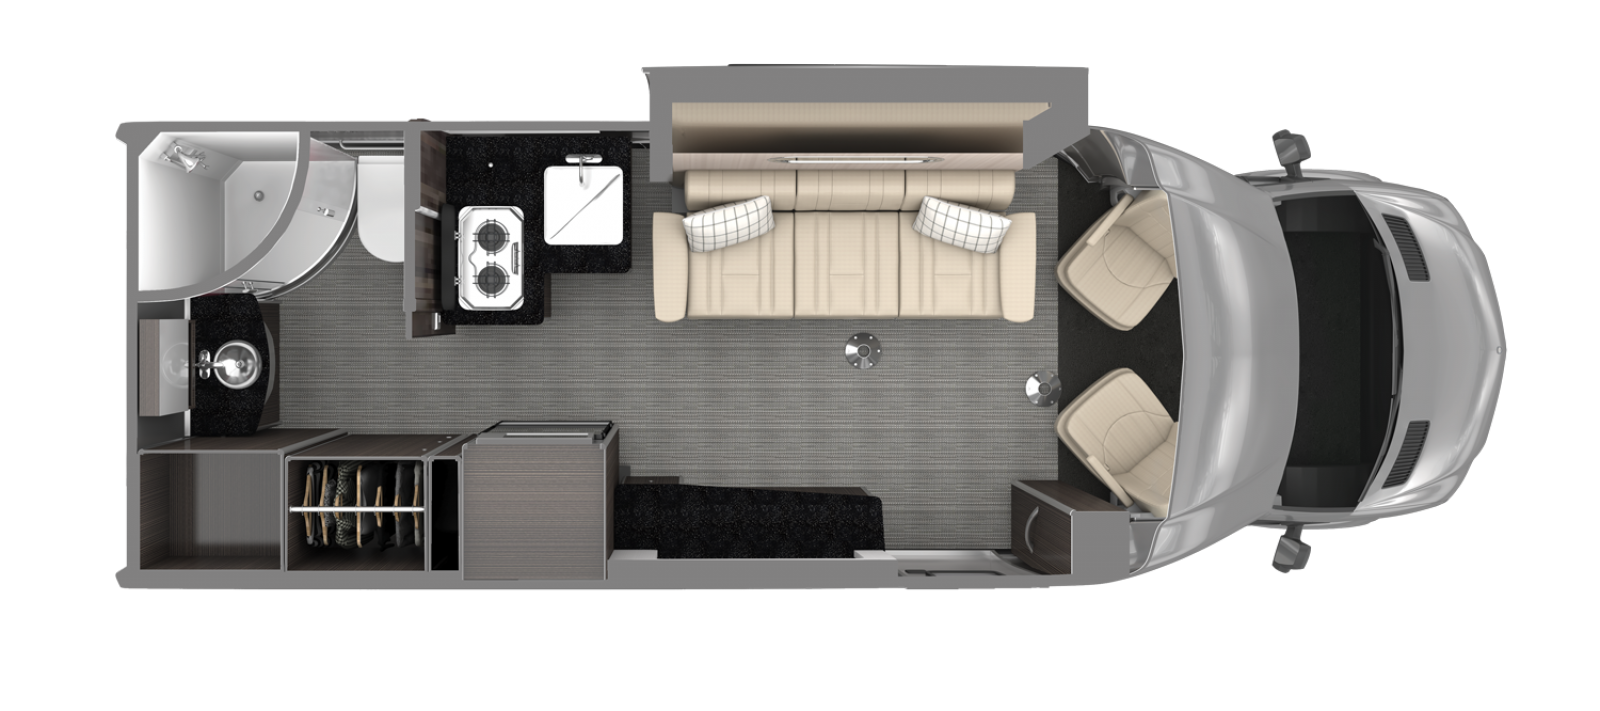 Airstream Atlas Floor Plan Modern Greige Decor